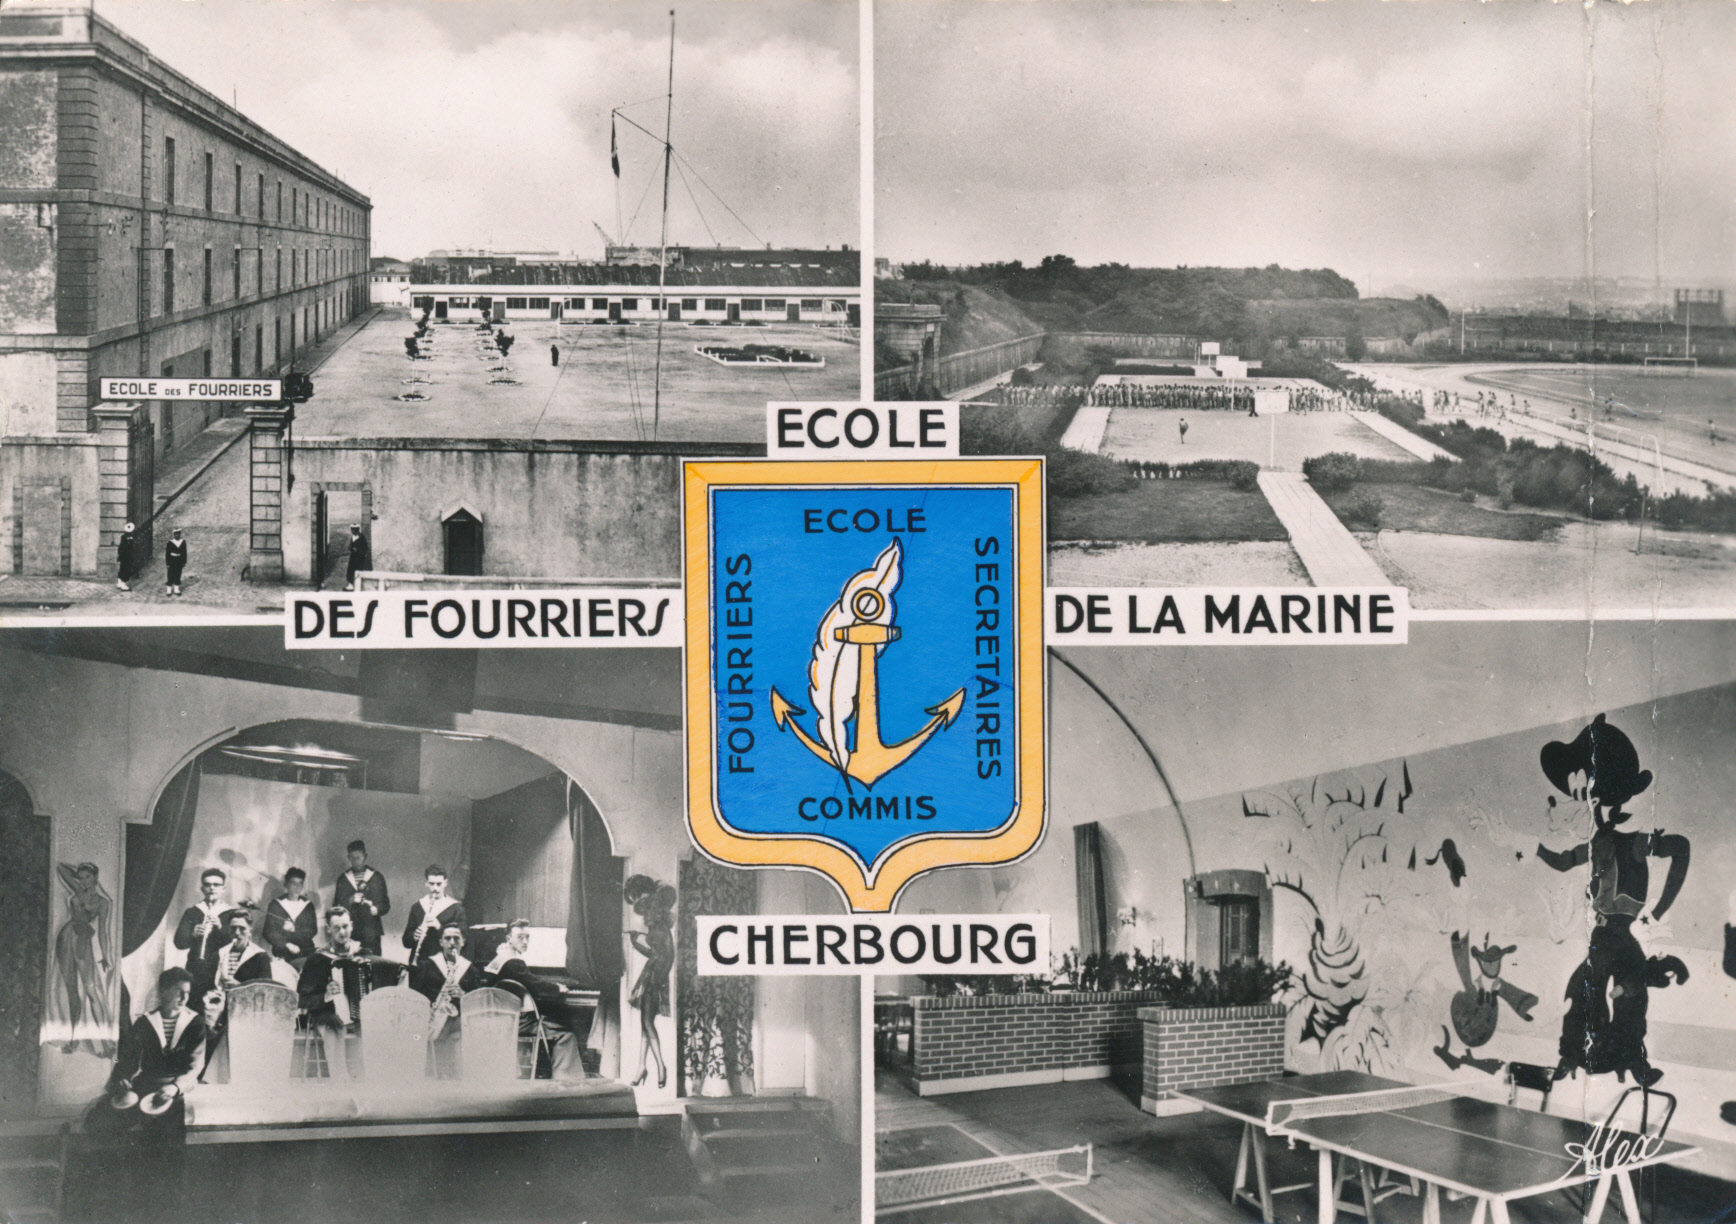 ÉCOLE DES FOURRIERS CHERBOURG - Page 7 2692641953mauricethomas300pp